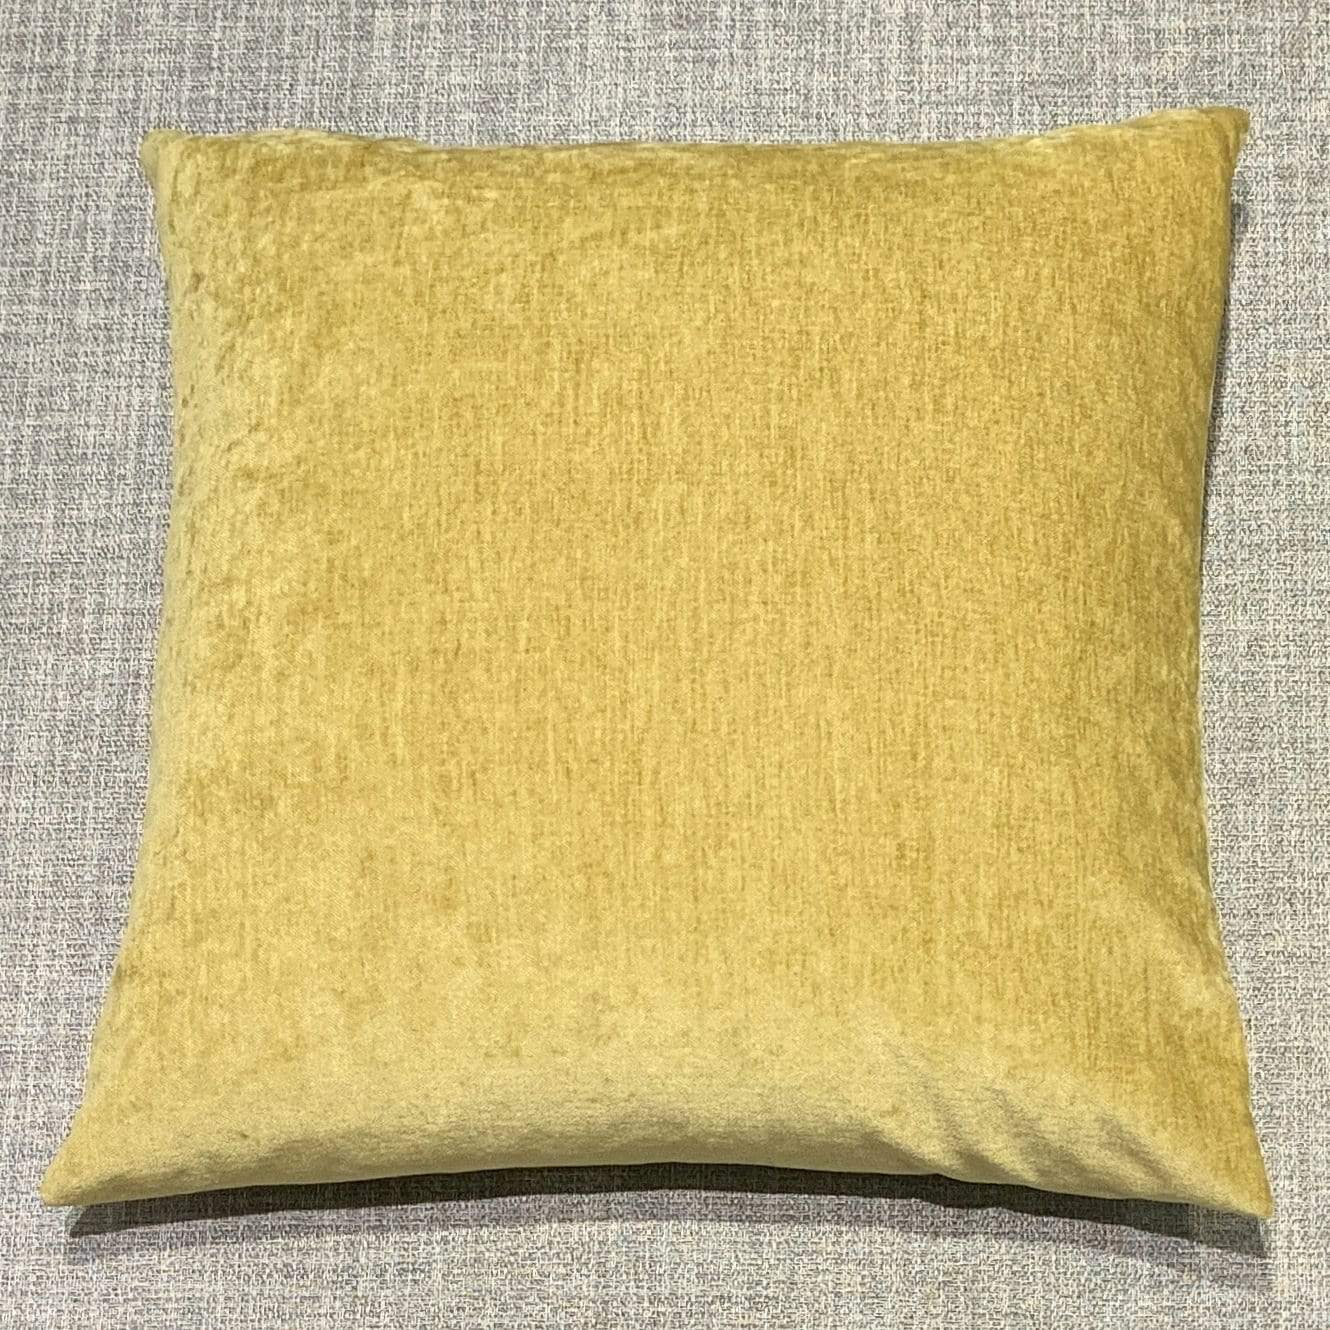 Cushion Sunflower Classic Luxe Chenille Cushion 20 x 20 inch